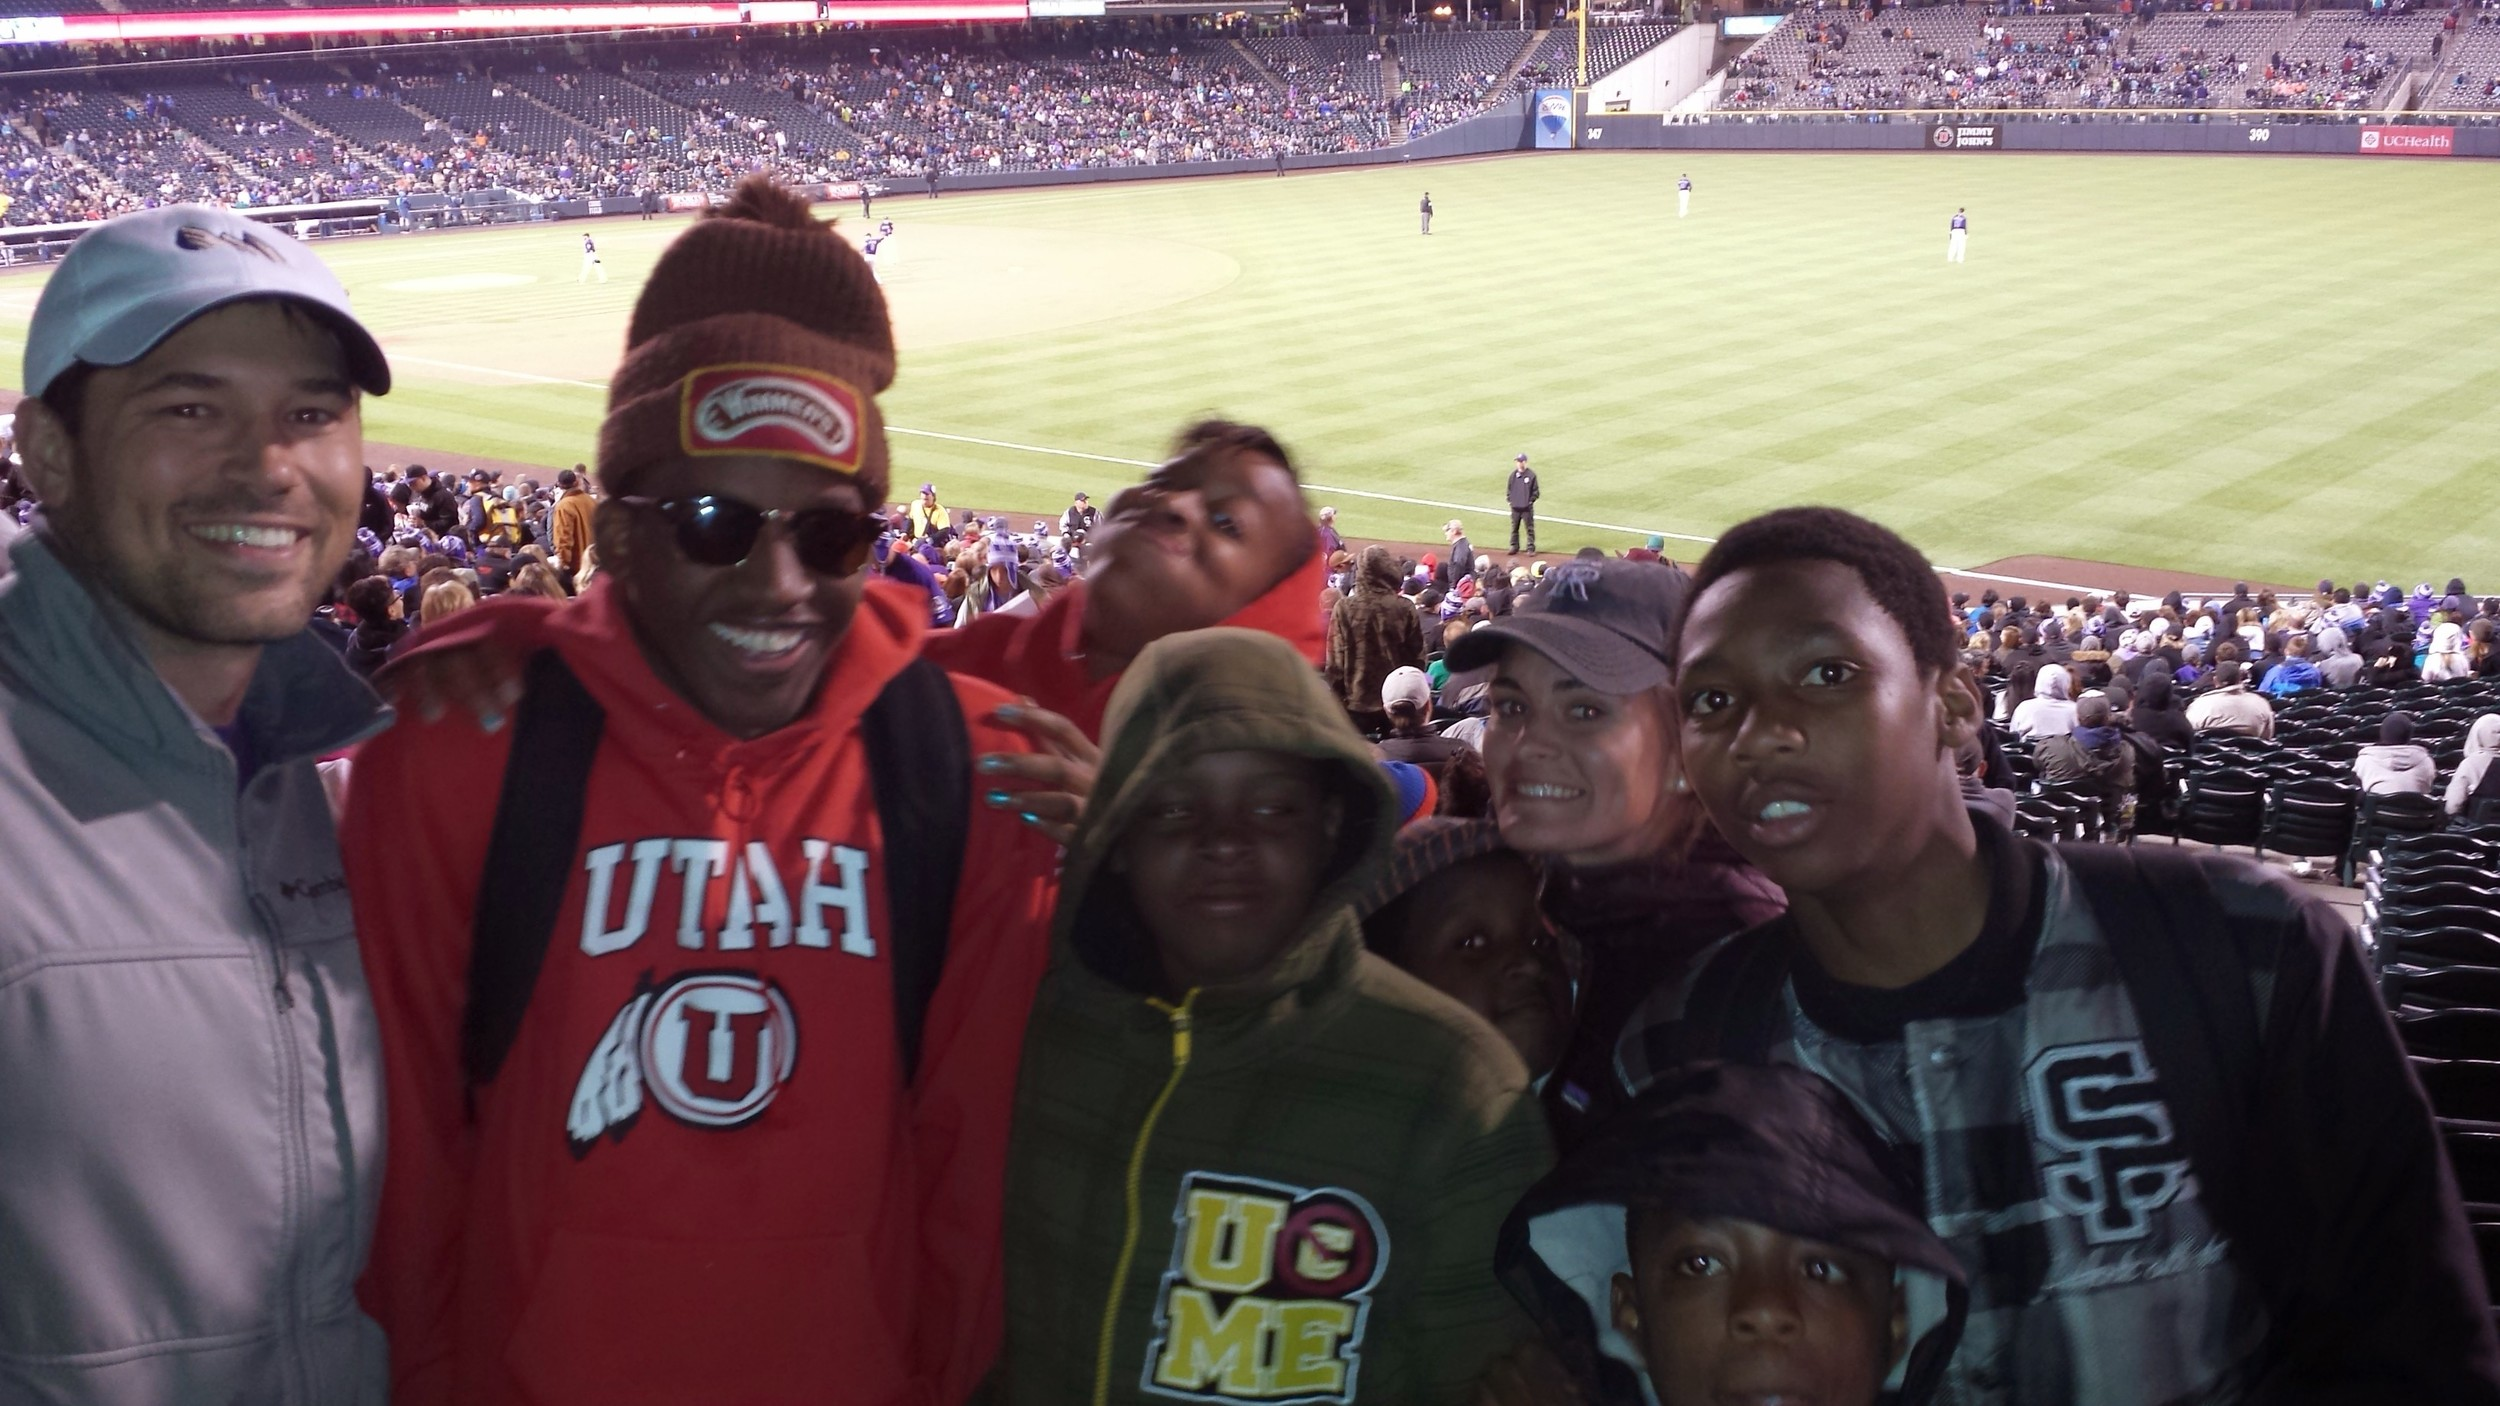 Rockies Game: Jordan with kids from Sun Valley (Pilot Community)